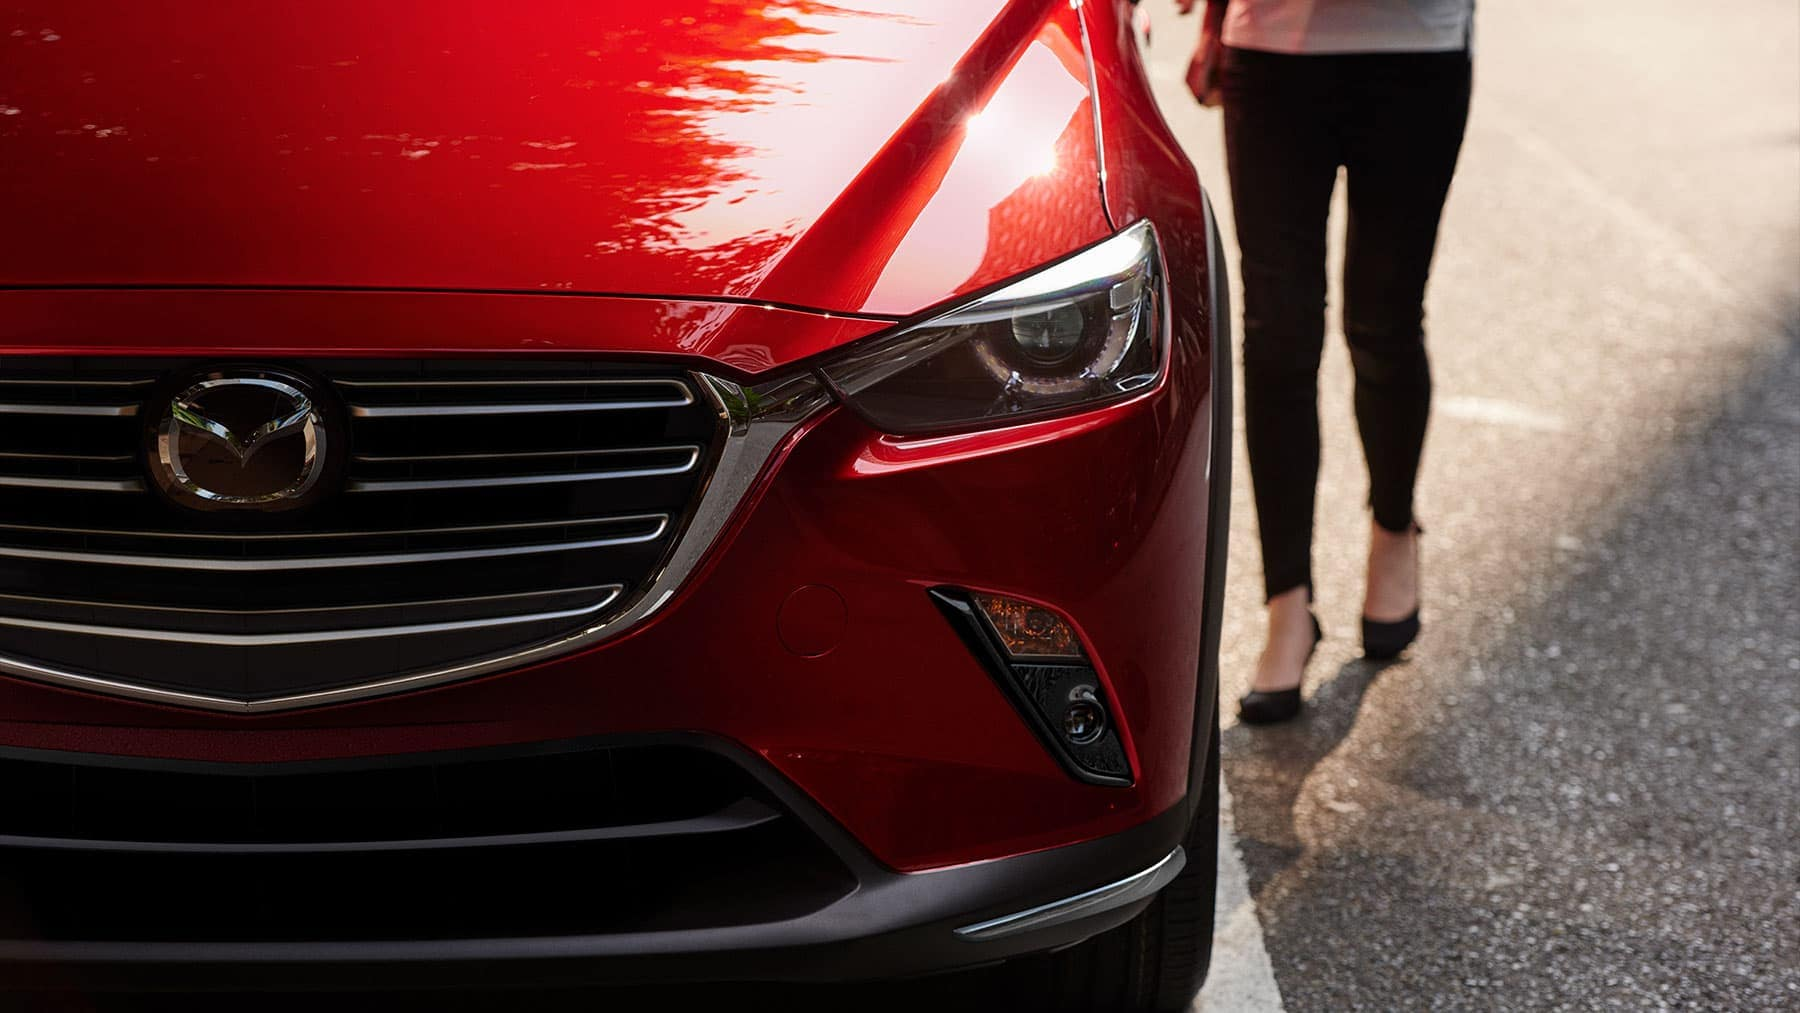 2019 Mazda CX-3 grille up close